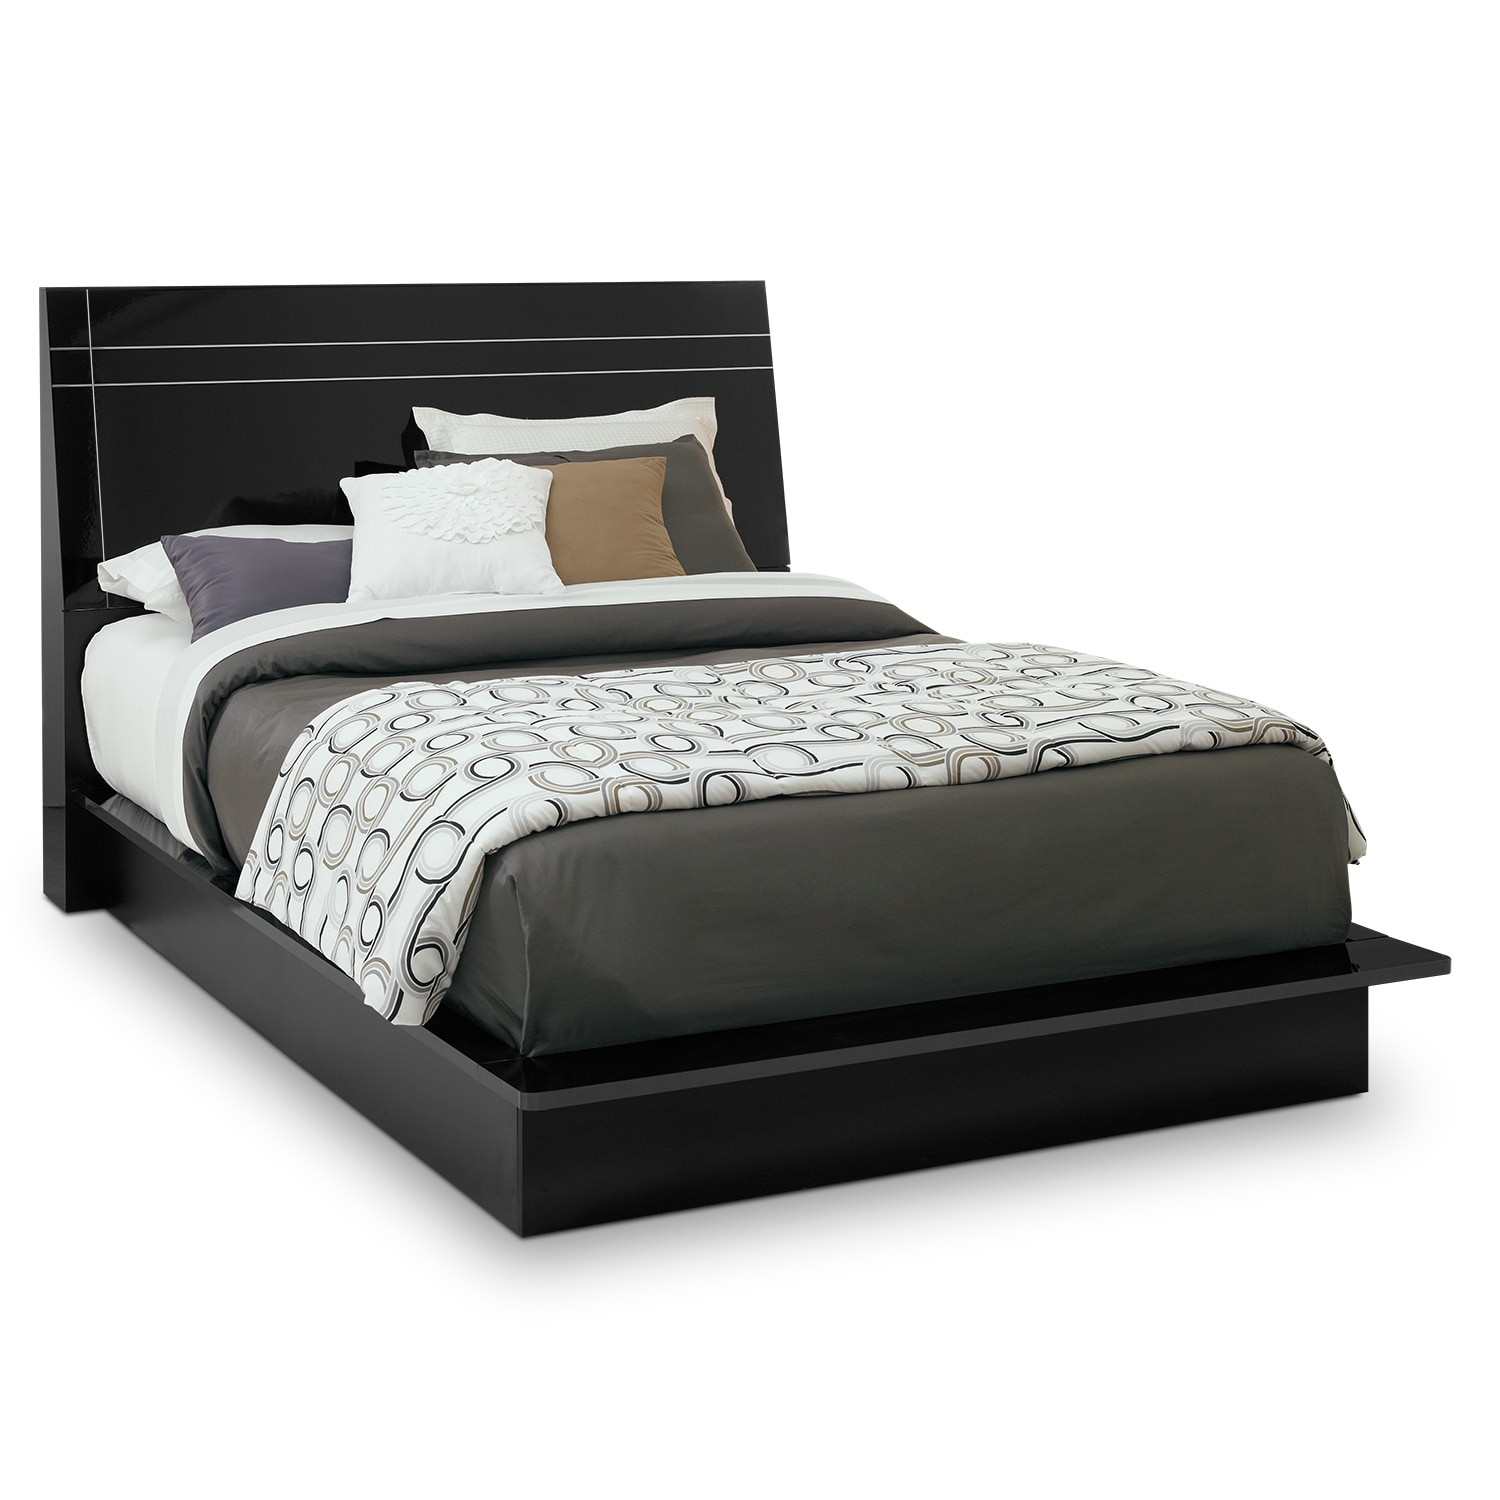 [Dimora Black II King Bed]